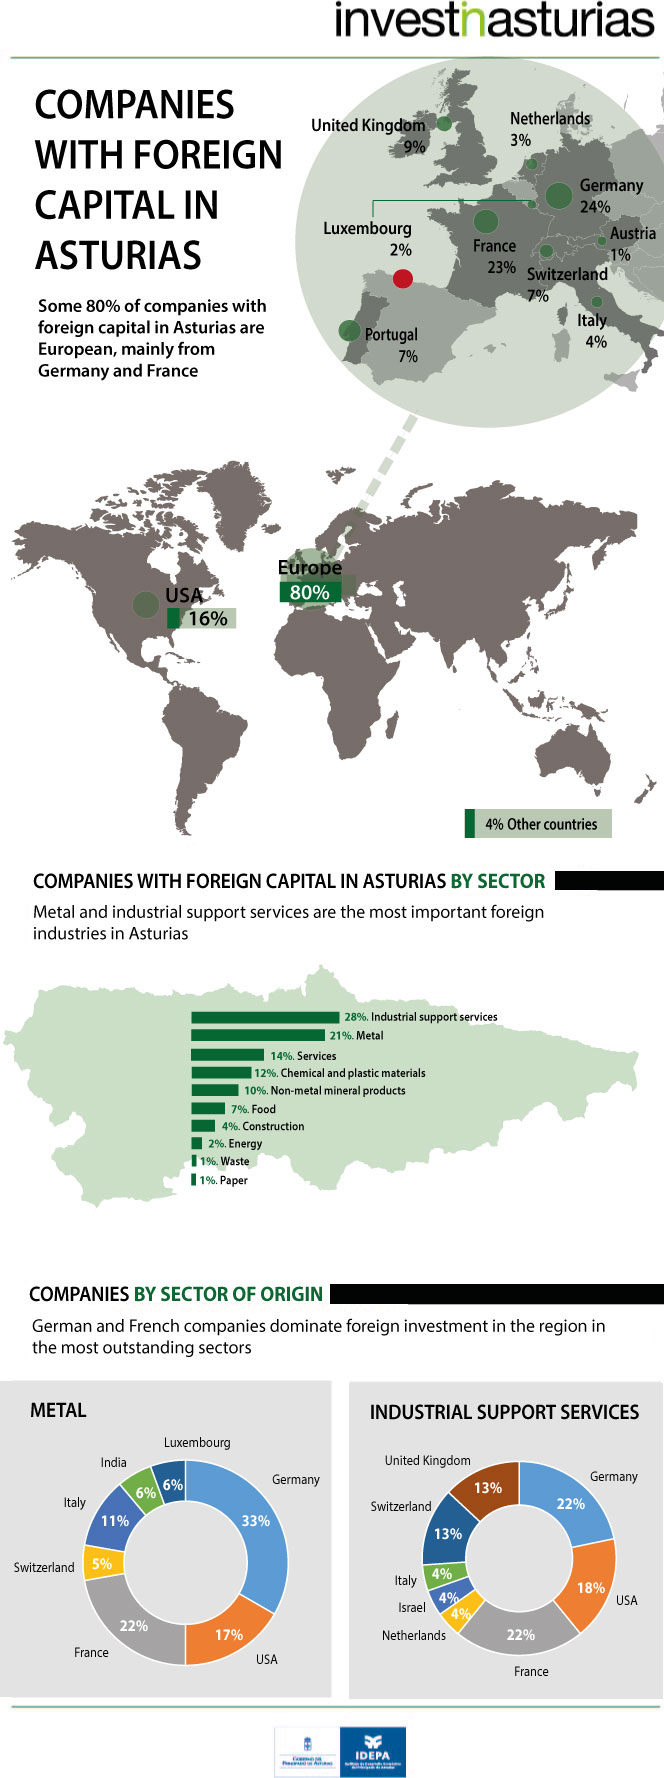 Companies with foreign capital in Asturias